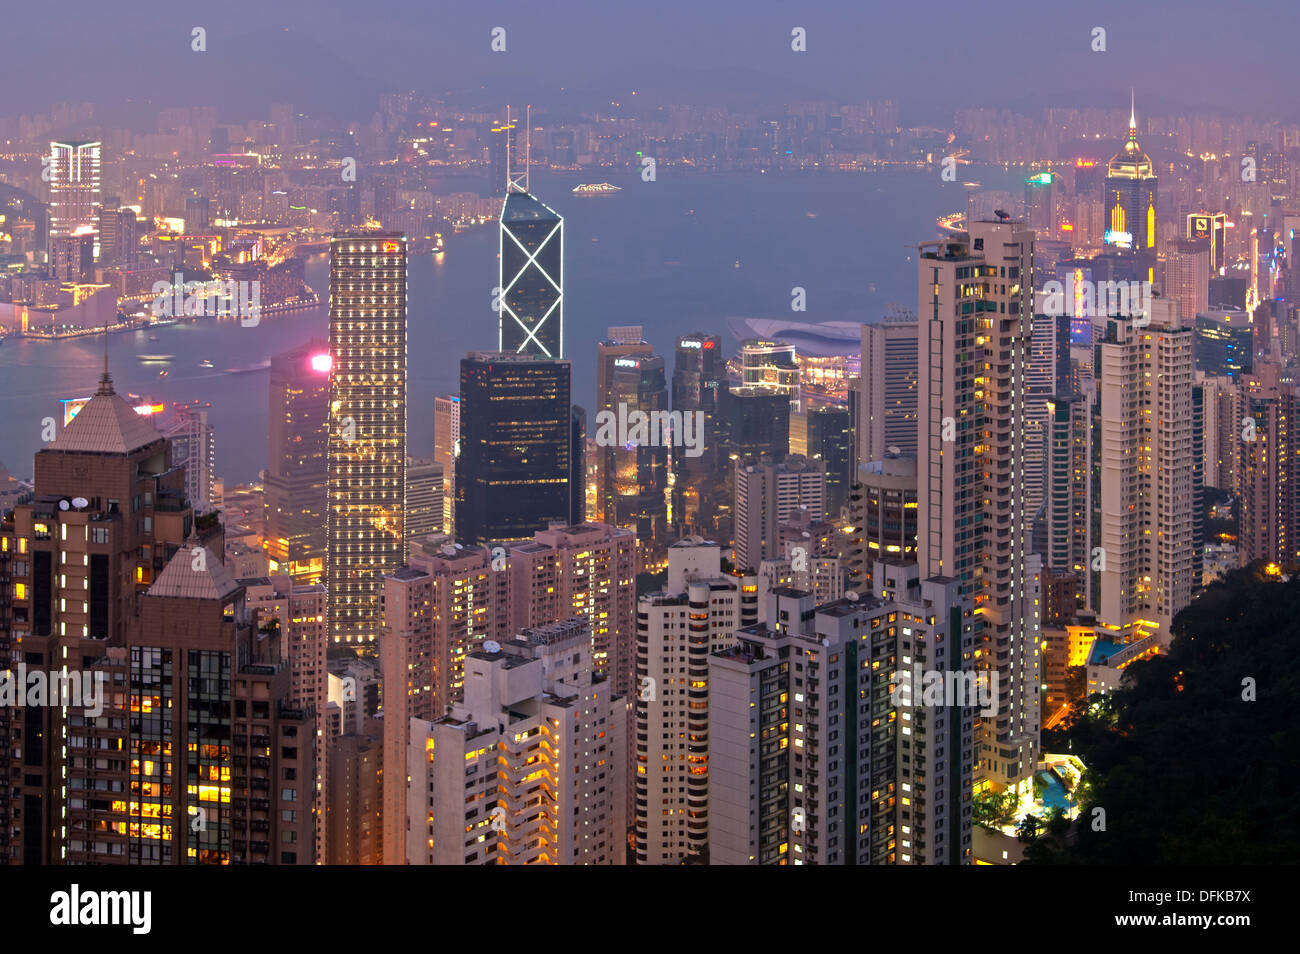 Night view over the skyscrapers in Central District and across the Victoria Harbour to Kowloon, Hong Kong - Stock Image